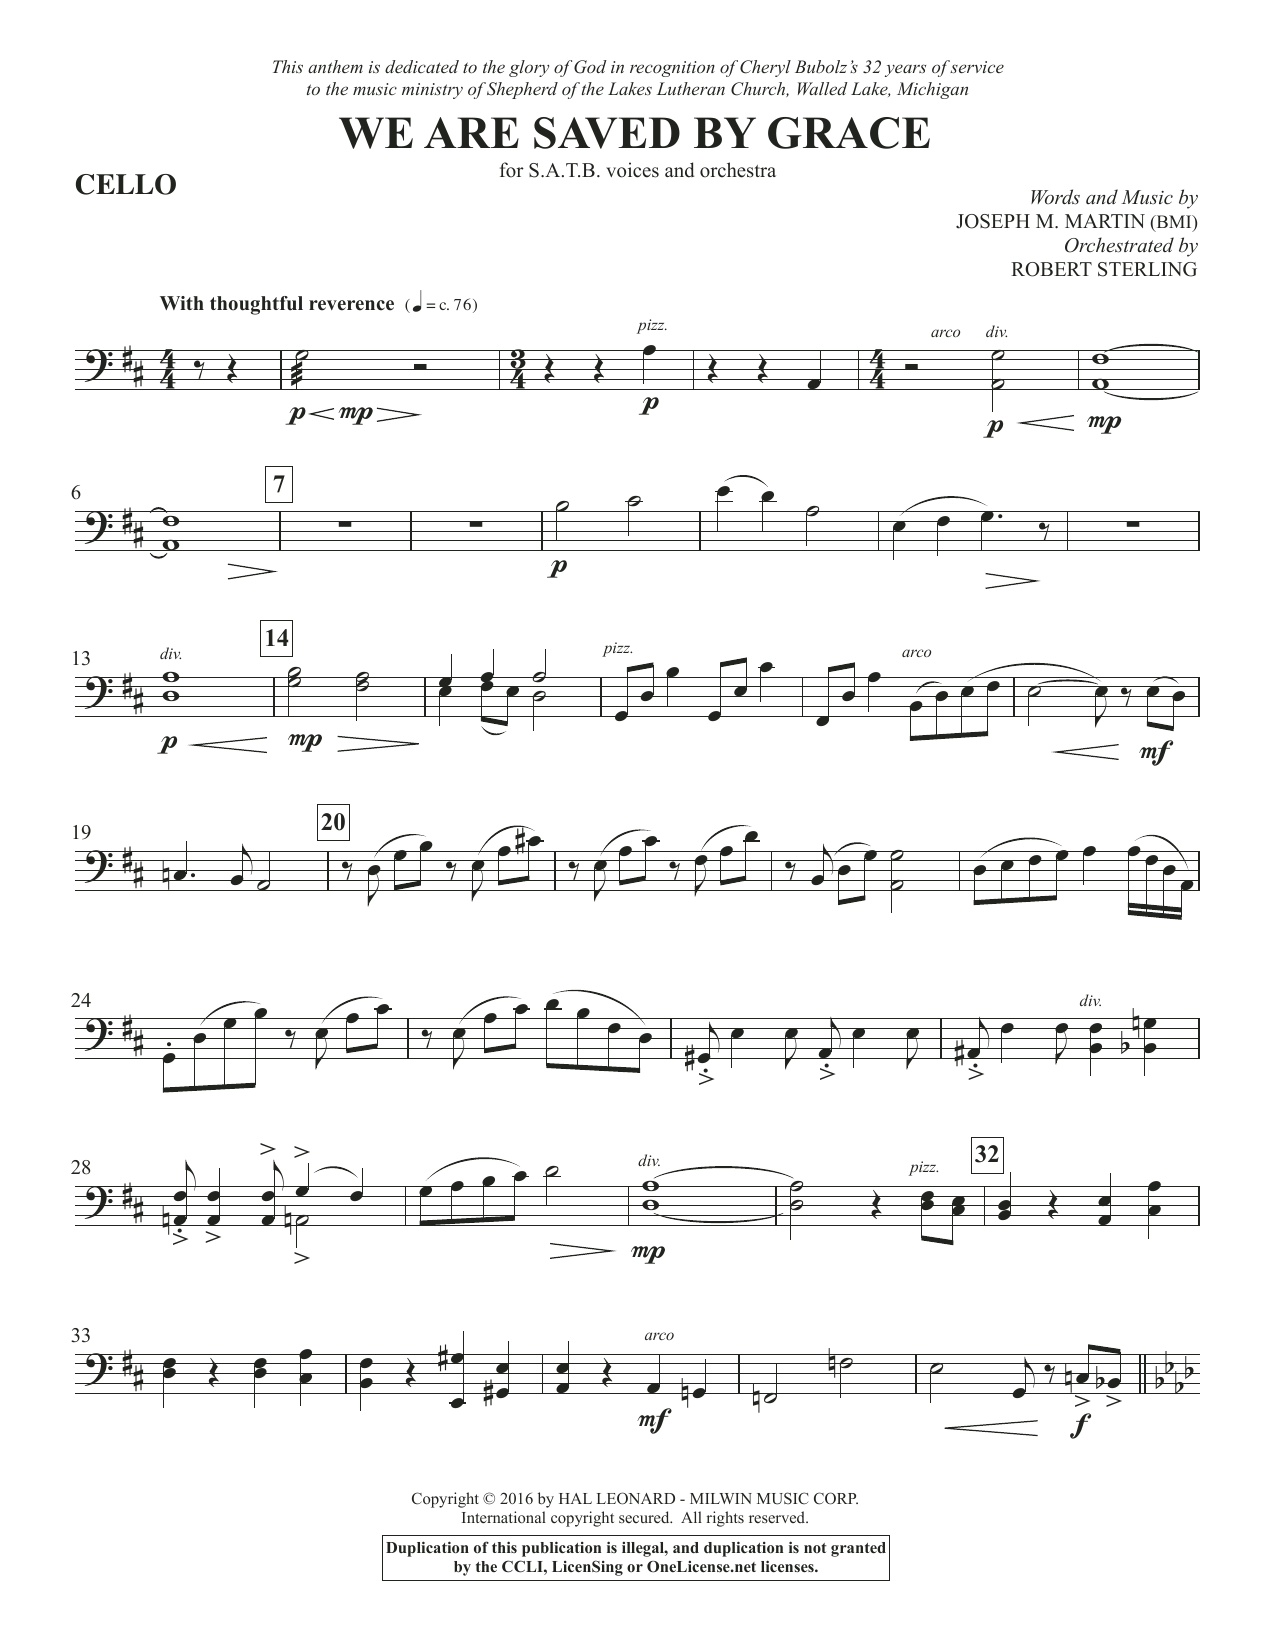 We Are Saved by Grace - Cello Sheet Music